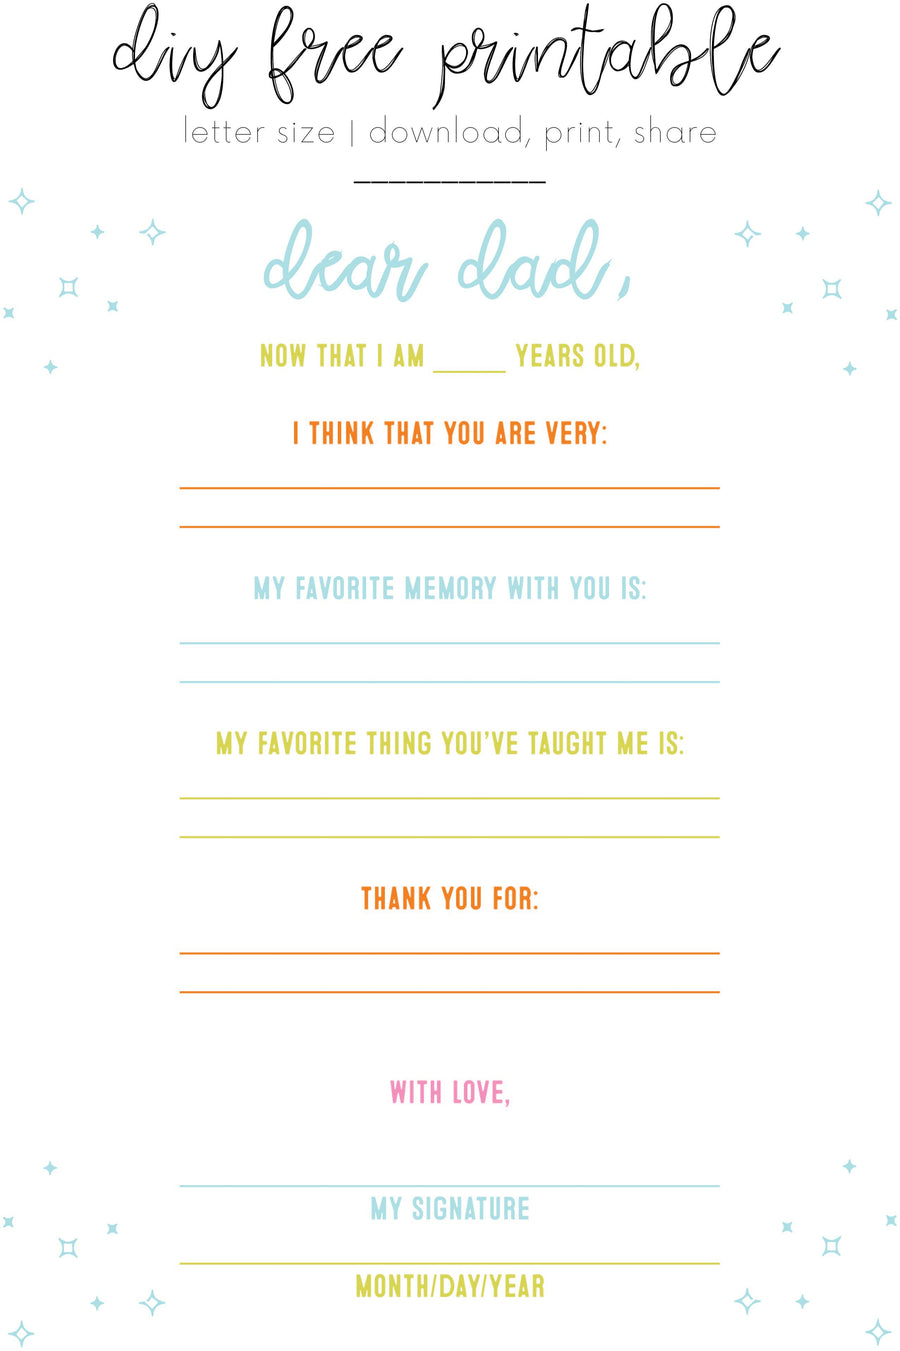 DIY Dear Dad Father's Day Printable